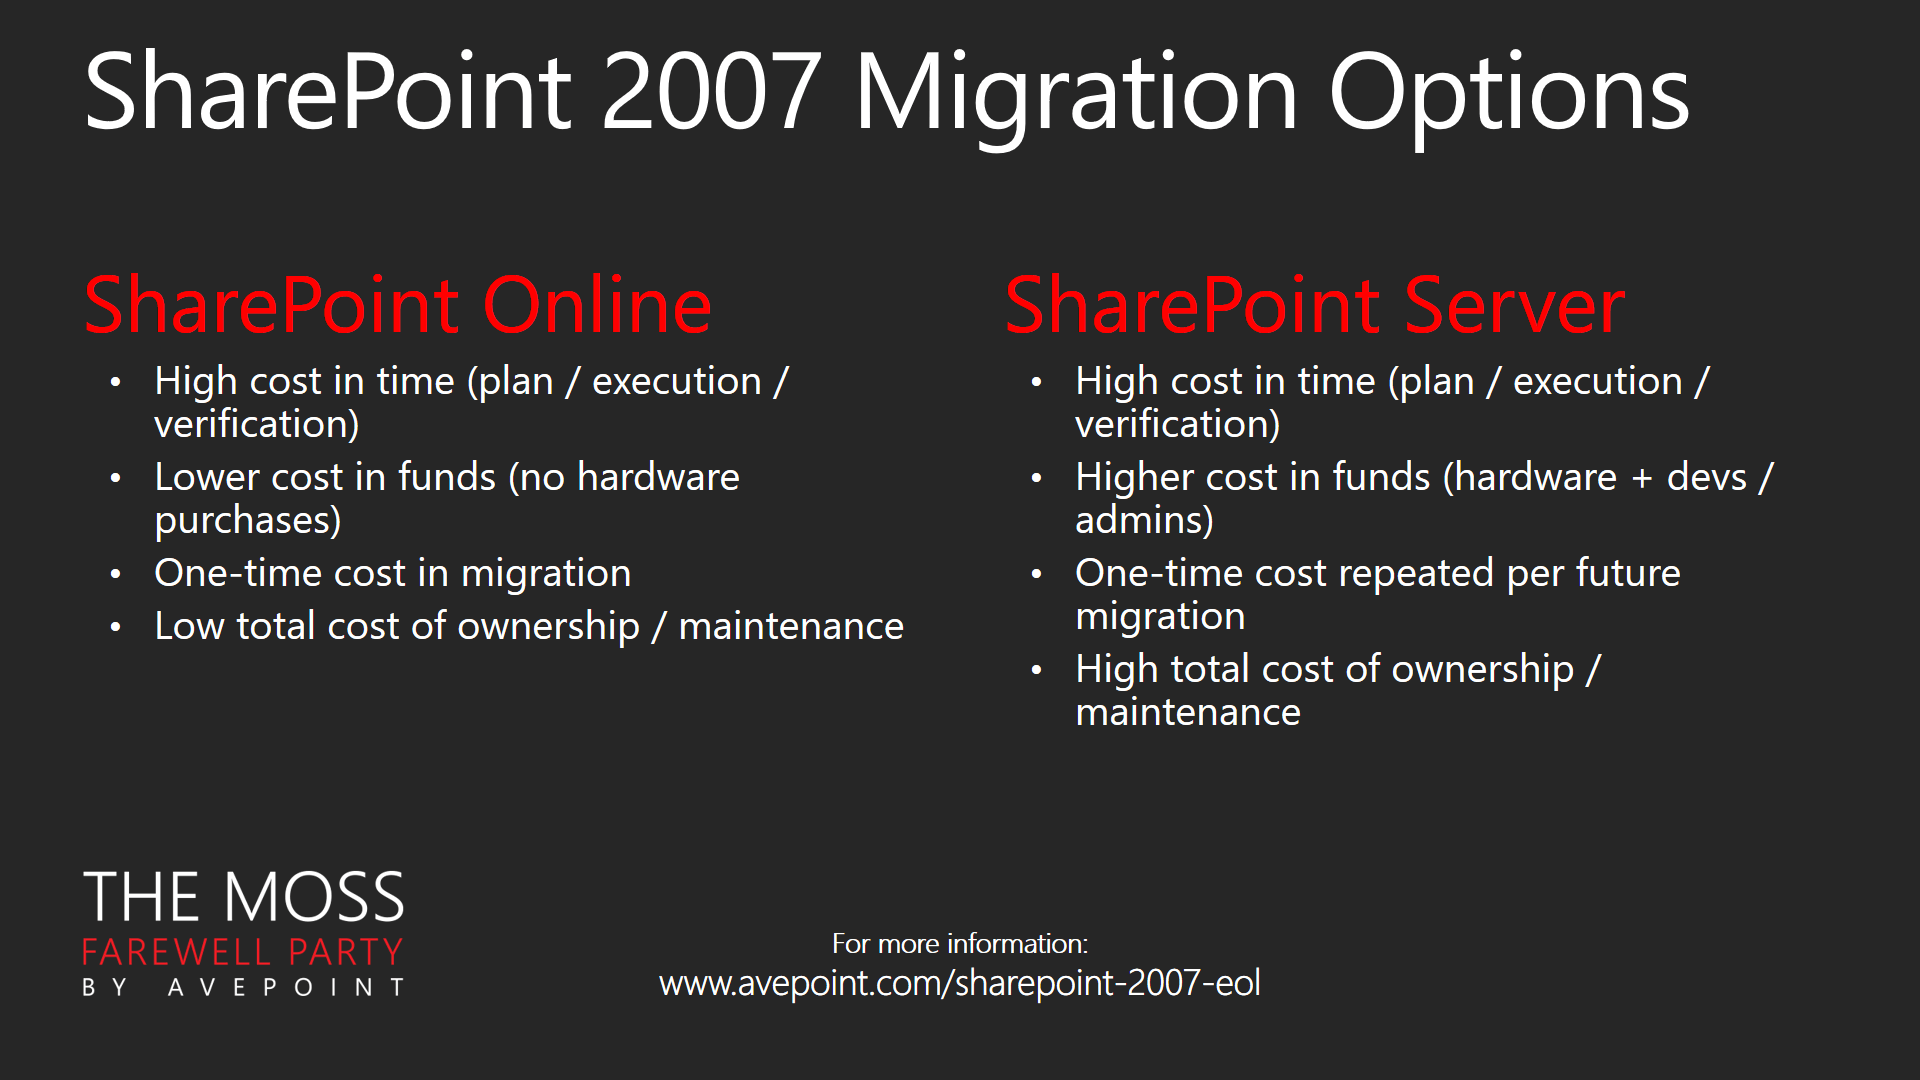 SharePoint 2007 Migration considerations